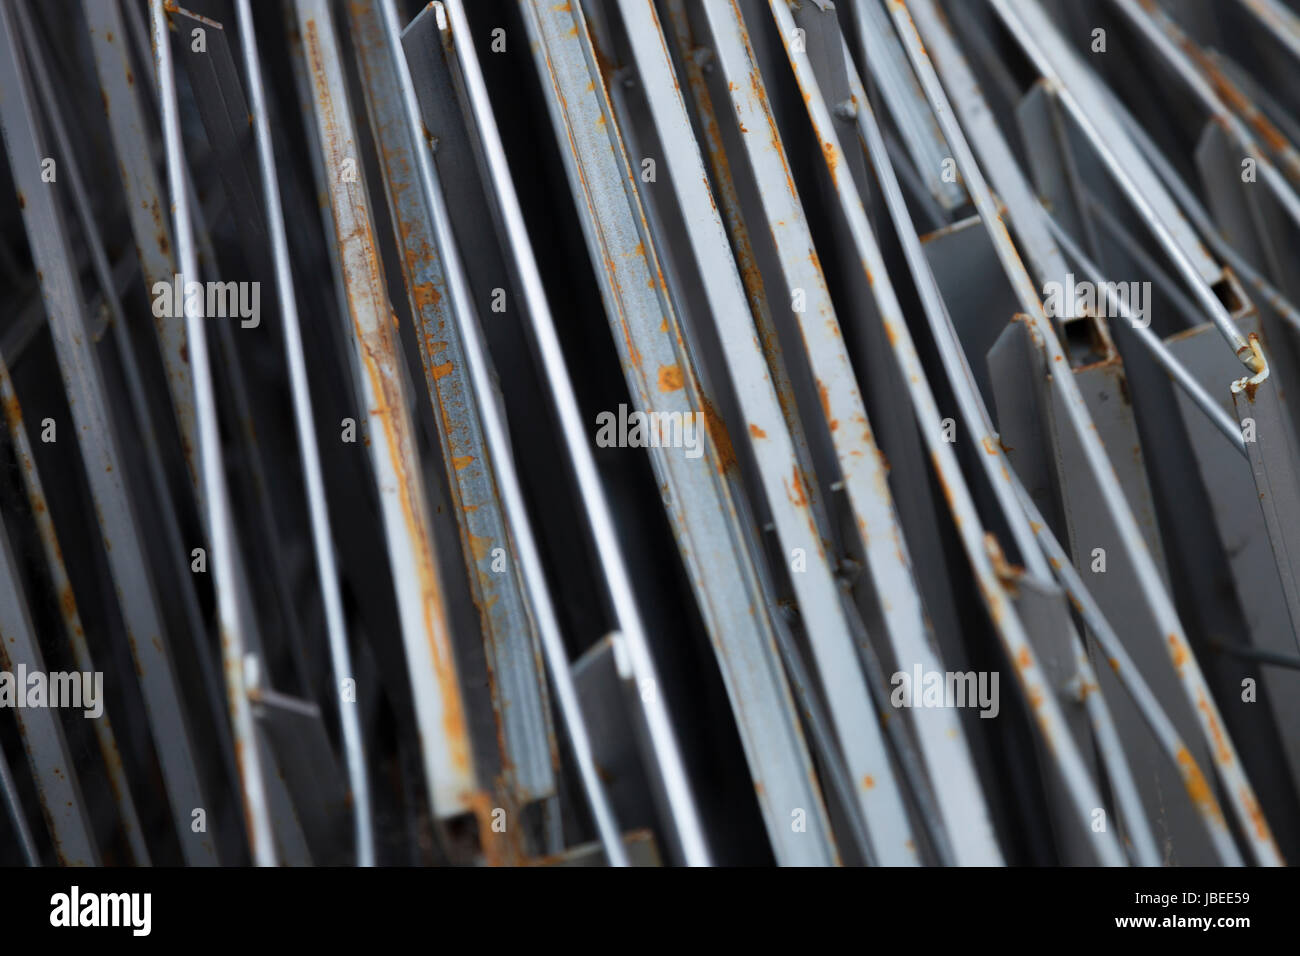 Angles & square bars for construction sites. - Stock Image